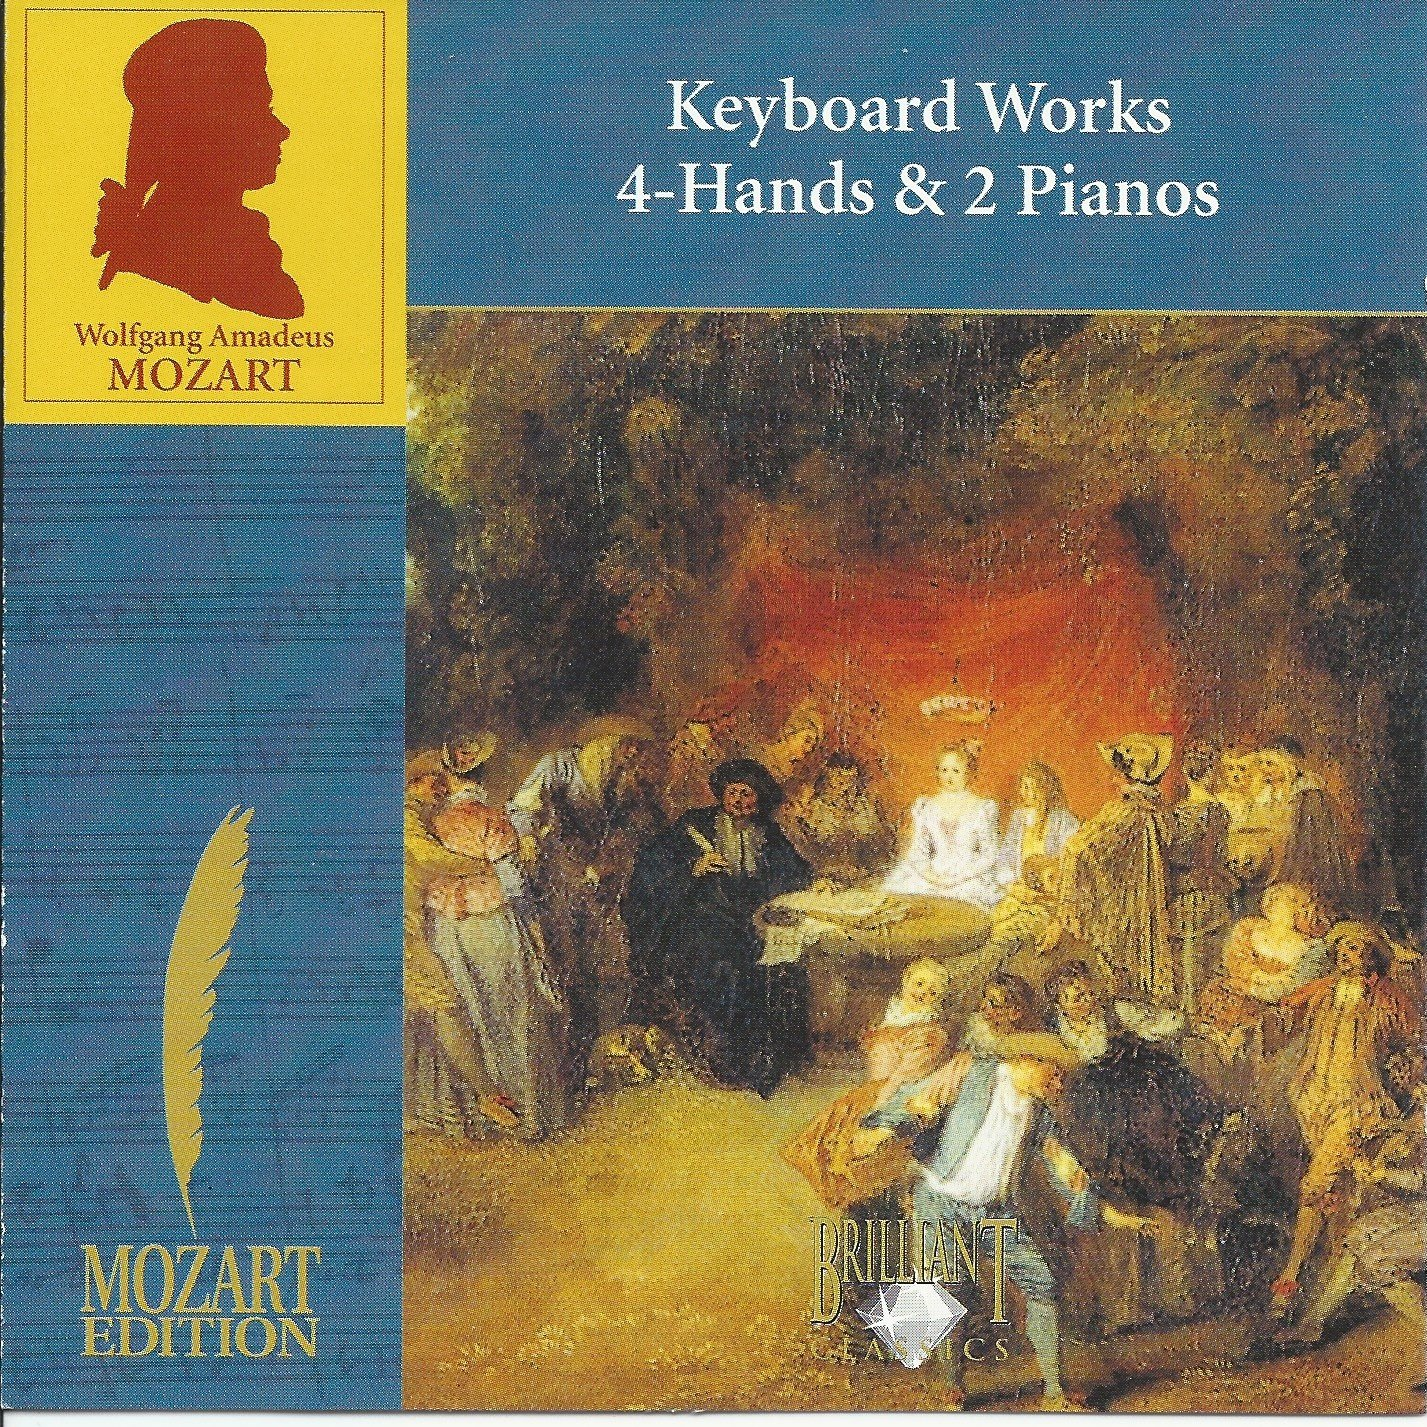 WA Mozart: Keyboard Works 4-Hands and Two Pianos